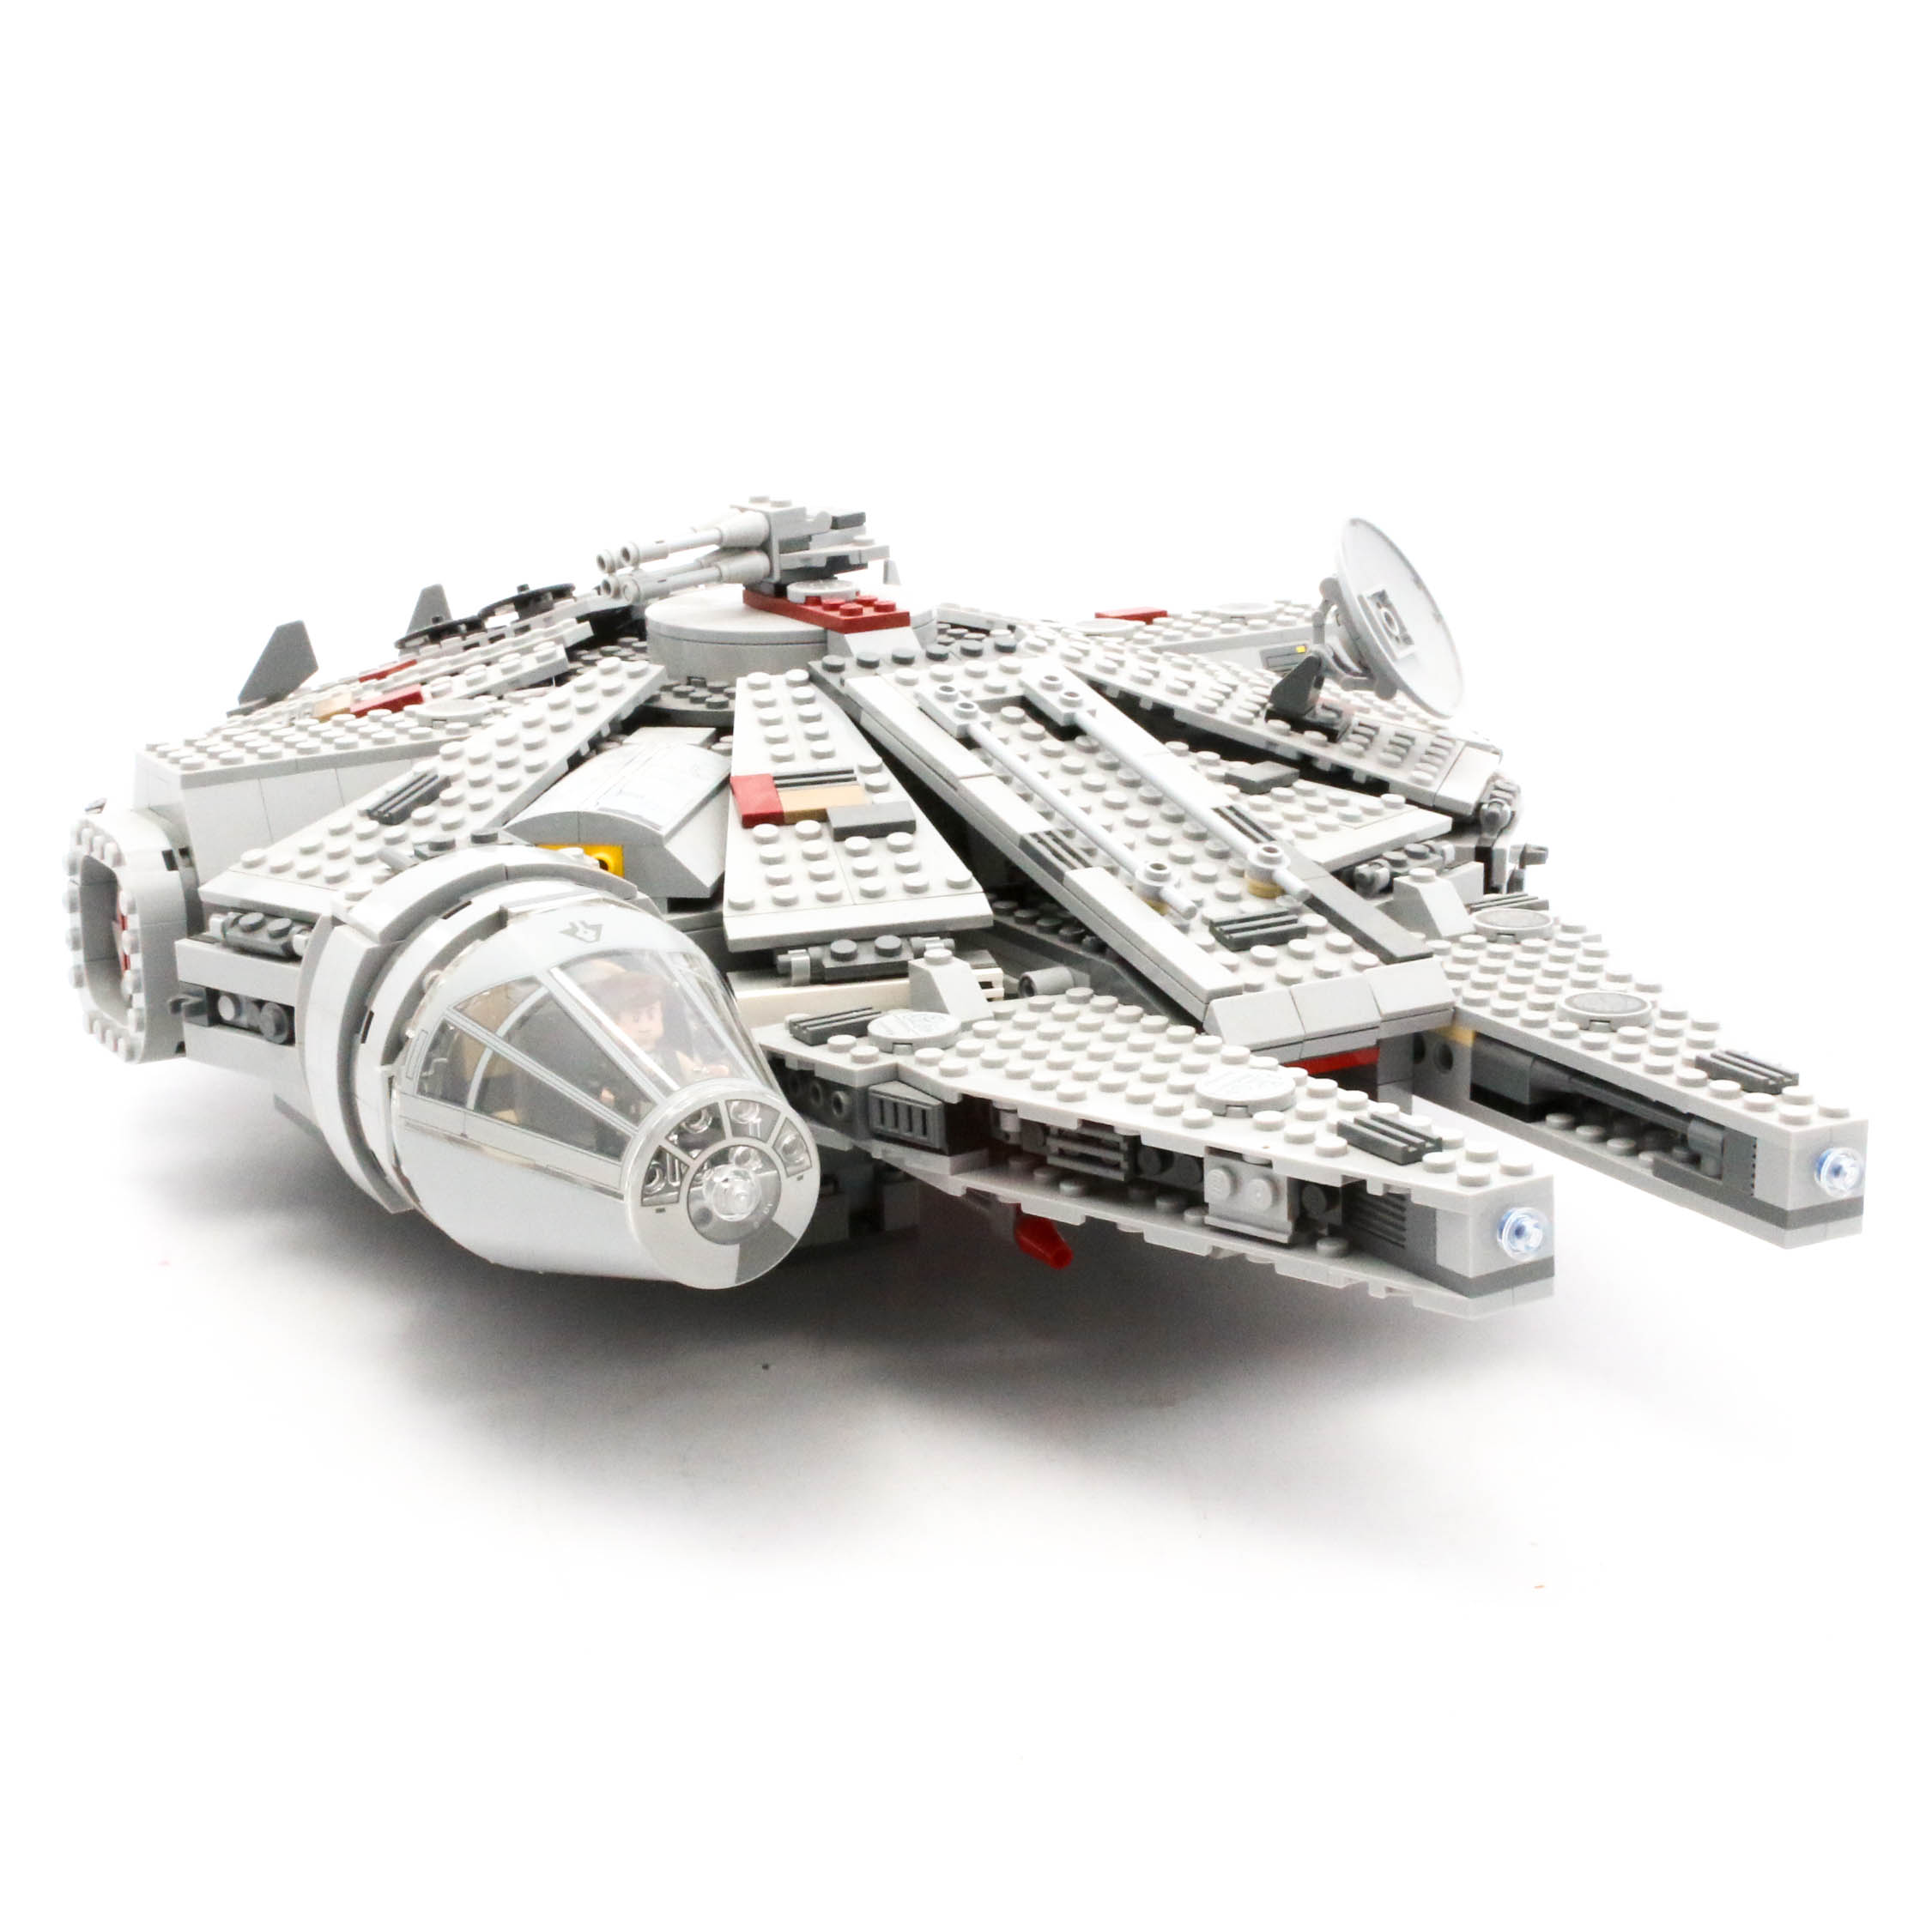 Lego Star Wars Millennium Falcon 7965 With Instruction Booklets